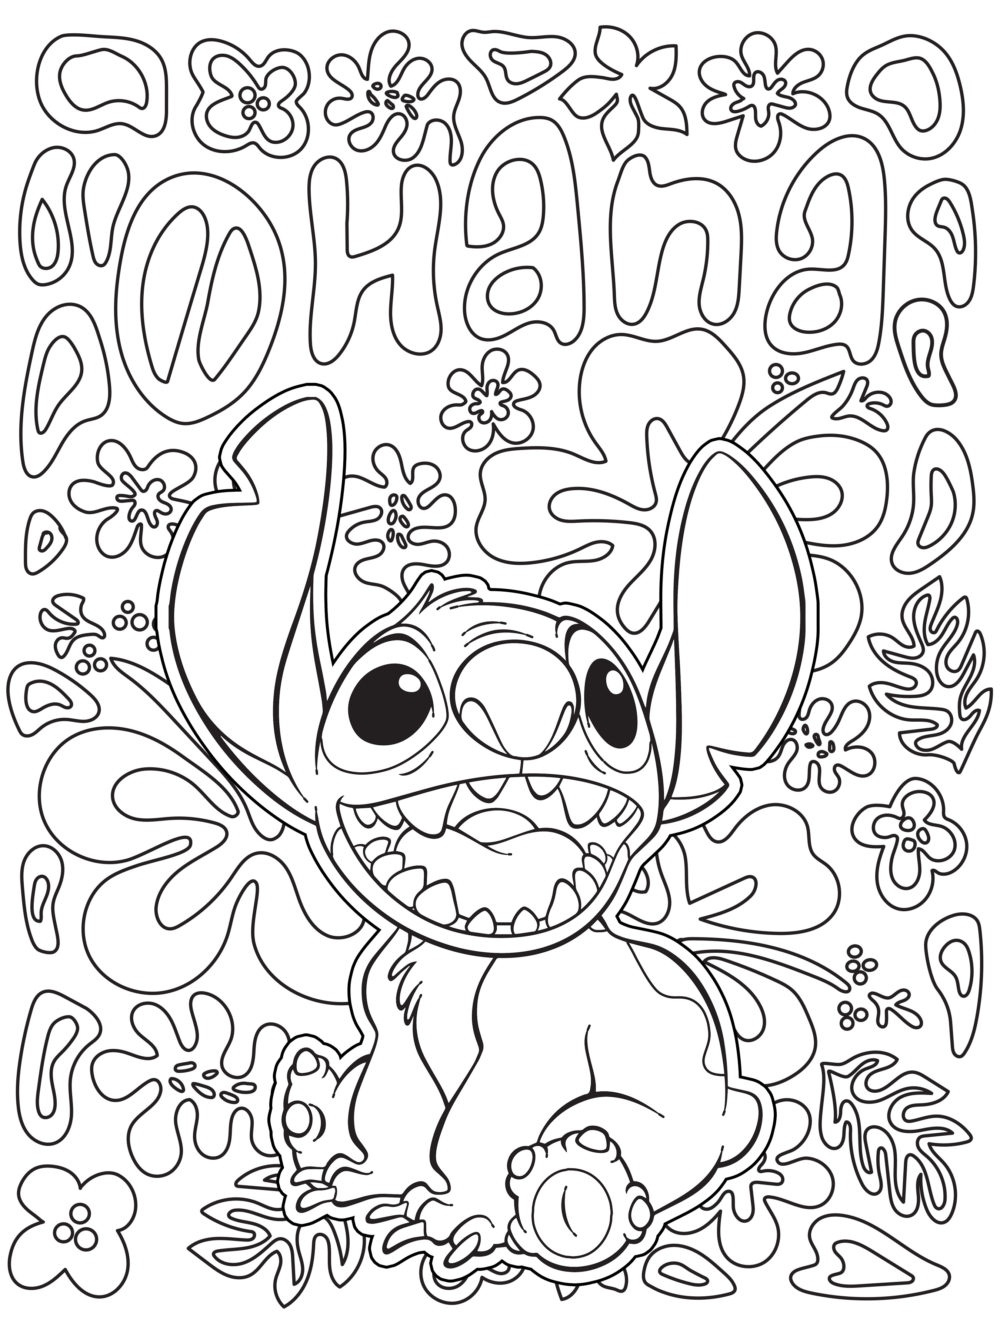 25+ Marvelous Image of Stress Relief Coloring Pages